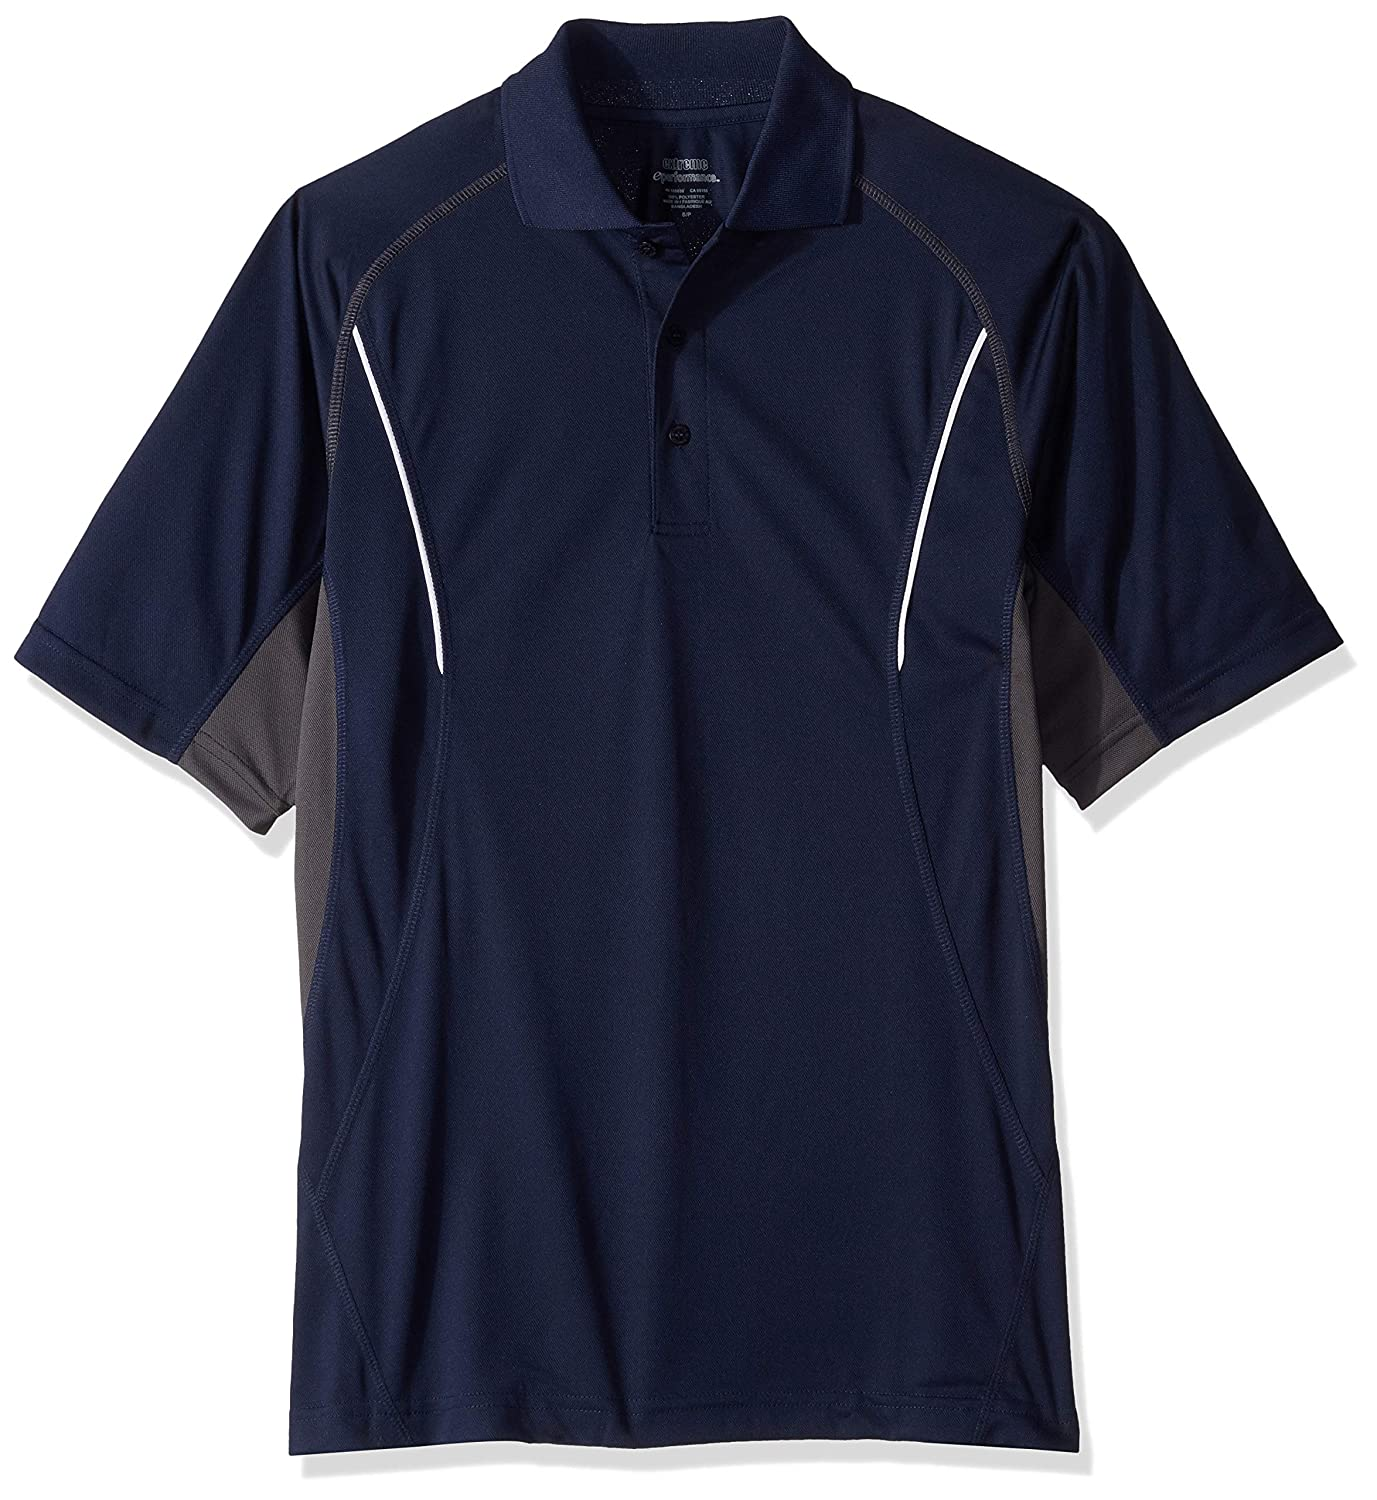 Ashe Xtream Mens Eperformance Parallel Snag Protection Polo with Piping